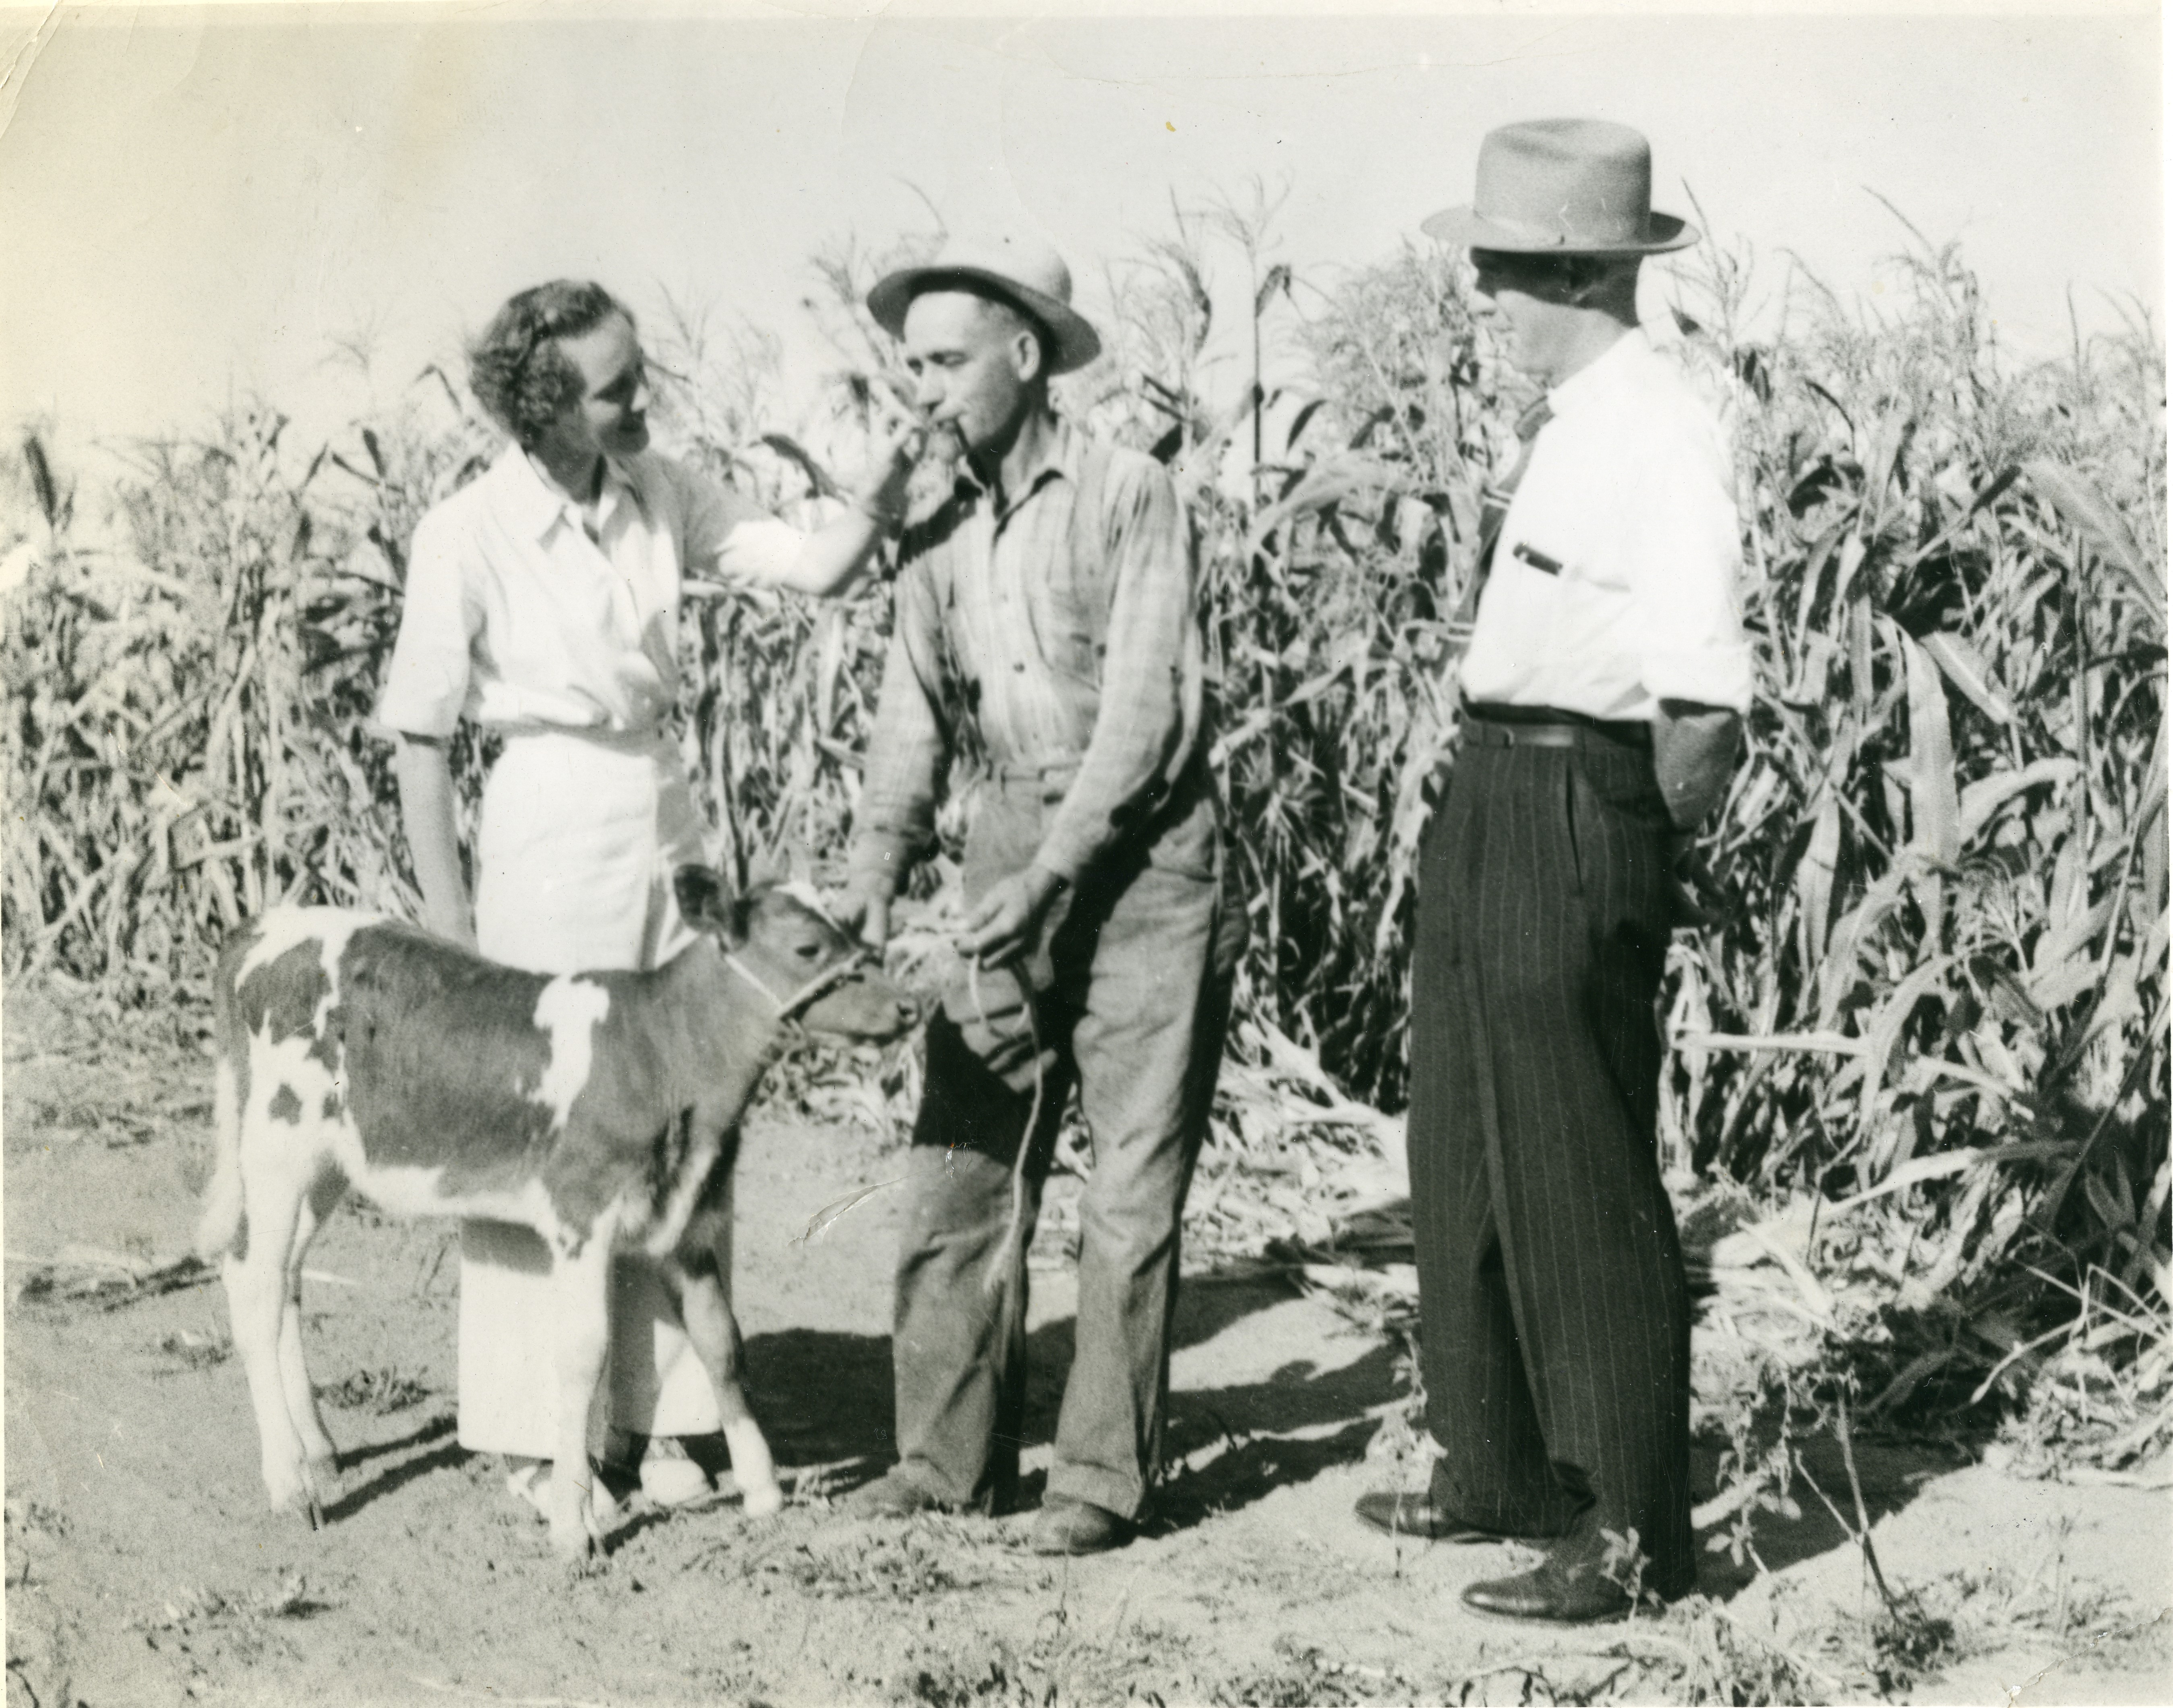 Black and white photograph of a woman and two men standing in a corn field with a young calf. The woman is wearing a white outfit and the men are dressed in shirts and pants with hats.